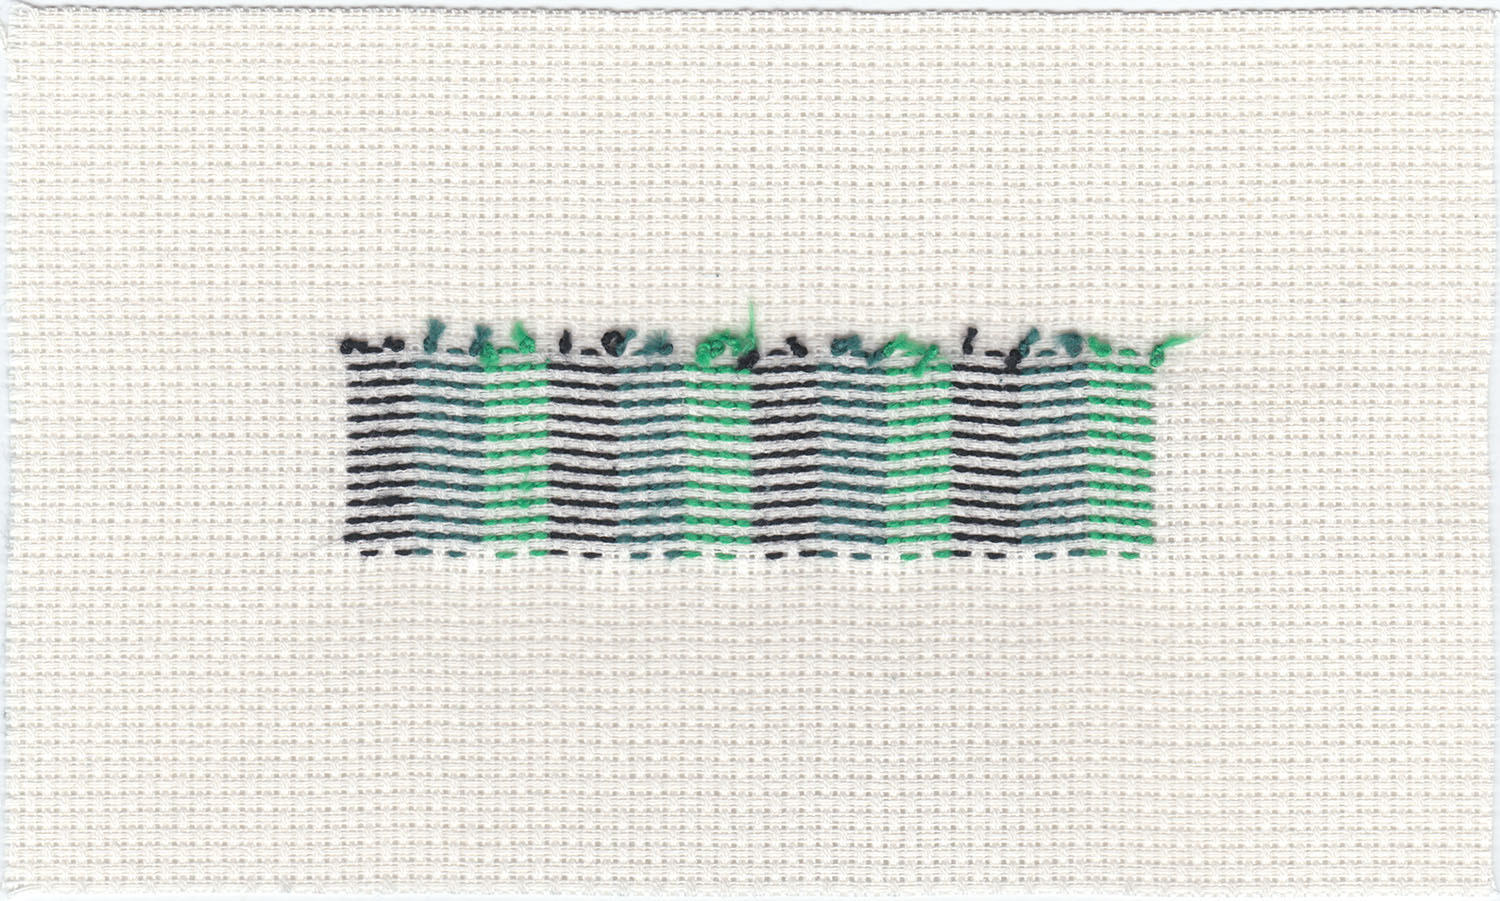 Colour Study in 576 Diagonal Stitches_9B_web.jpg